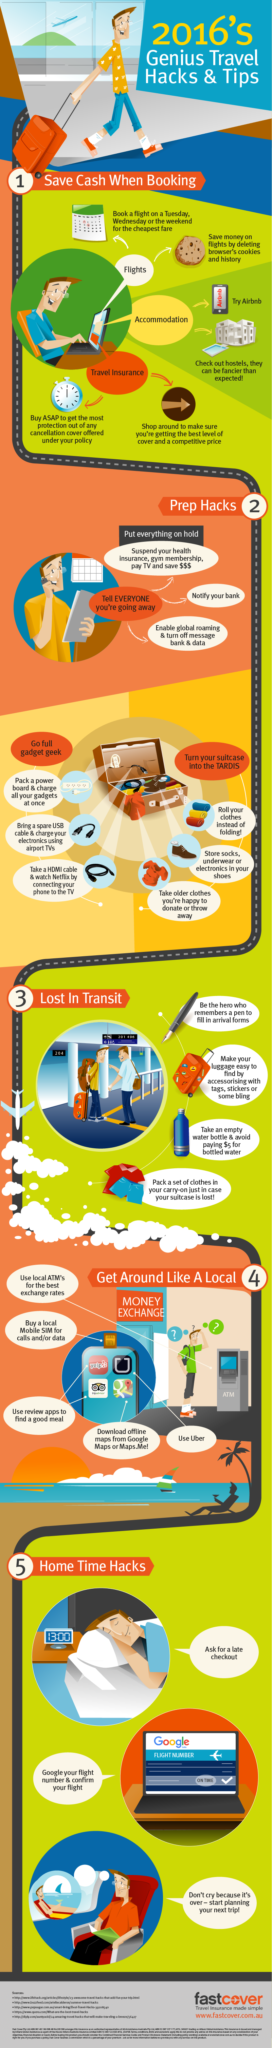 travel hacks business travel life infographic